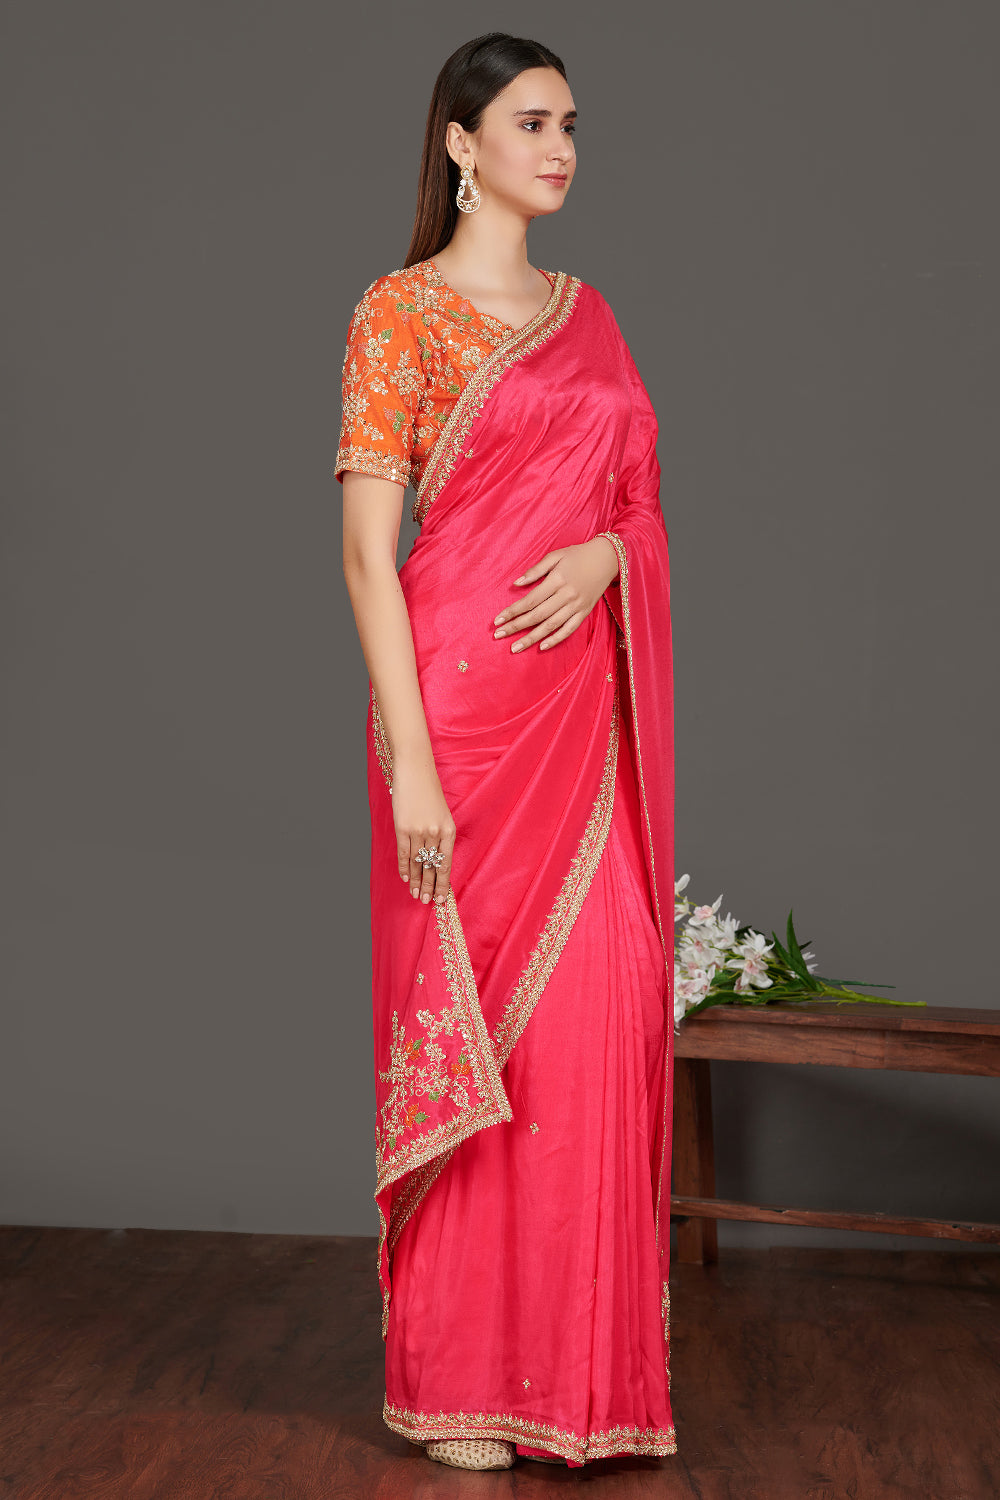 Buy beautiful pink embroidered handloom saree online in USA with orange saree blouse. Make a fashion statement on festive occasions and weddings with designer sarees, embroidered saris, handwoven saris, party wear sarees from Pure Elegance Indian fashion store in USA.-full view